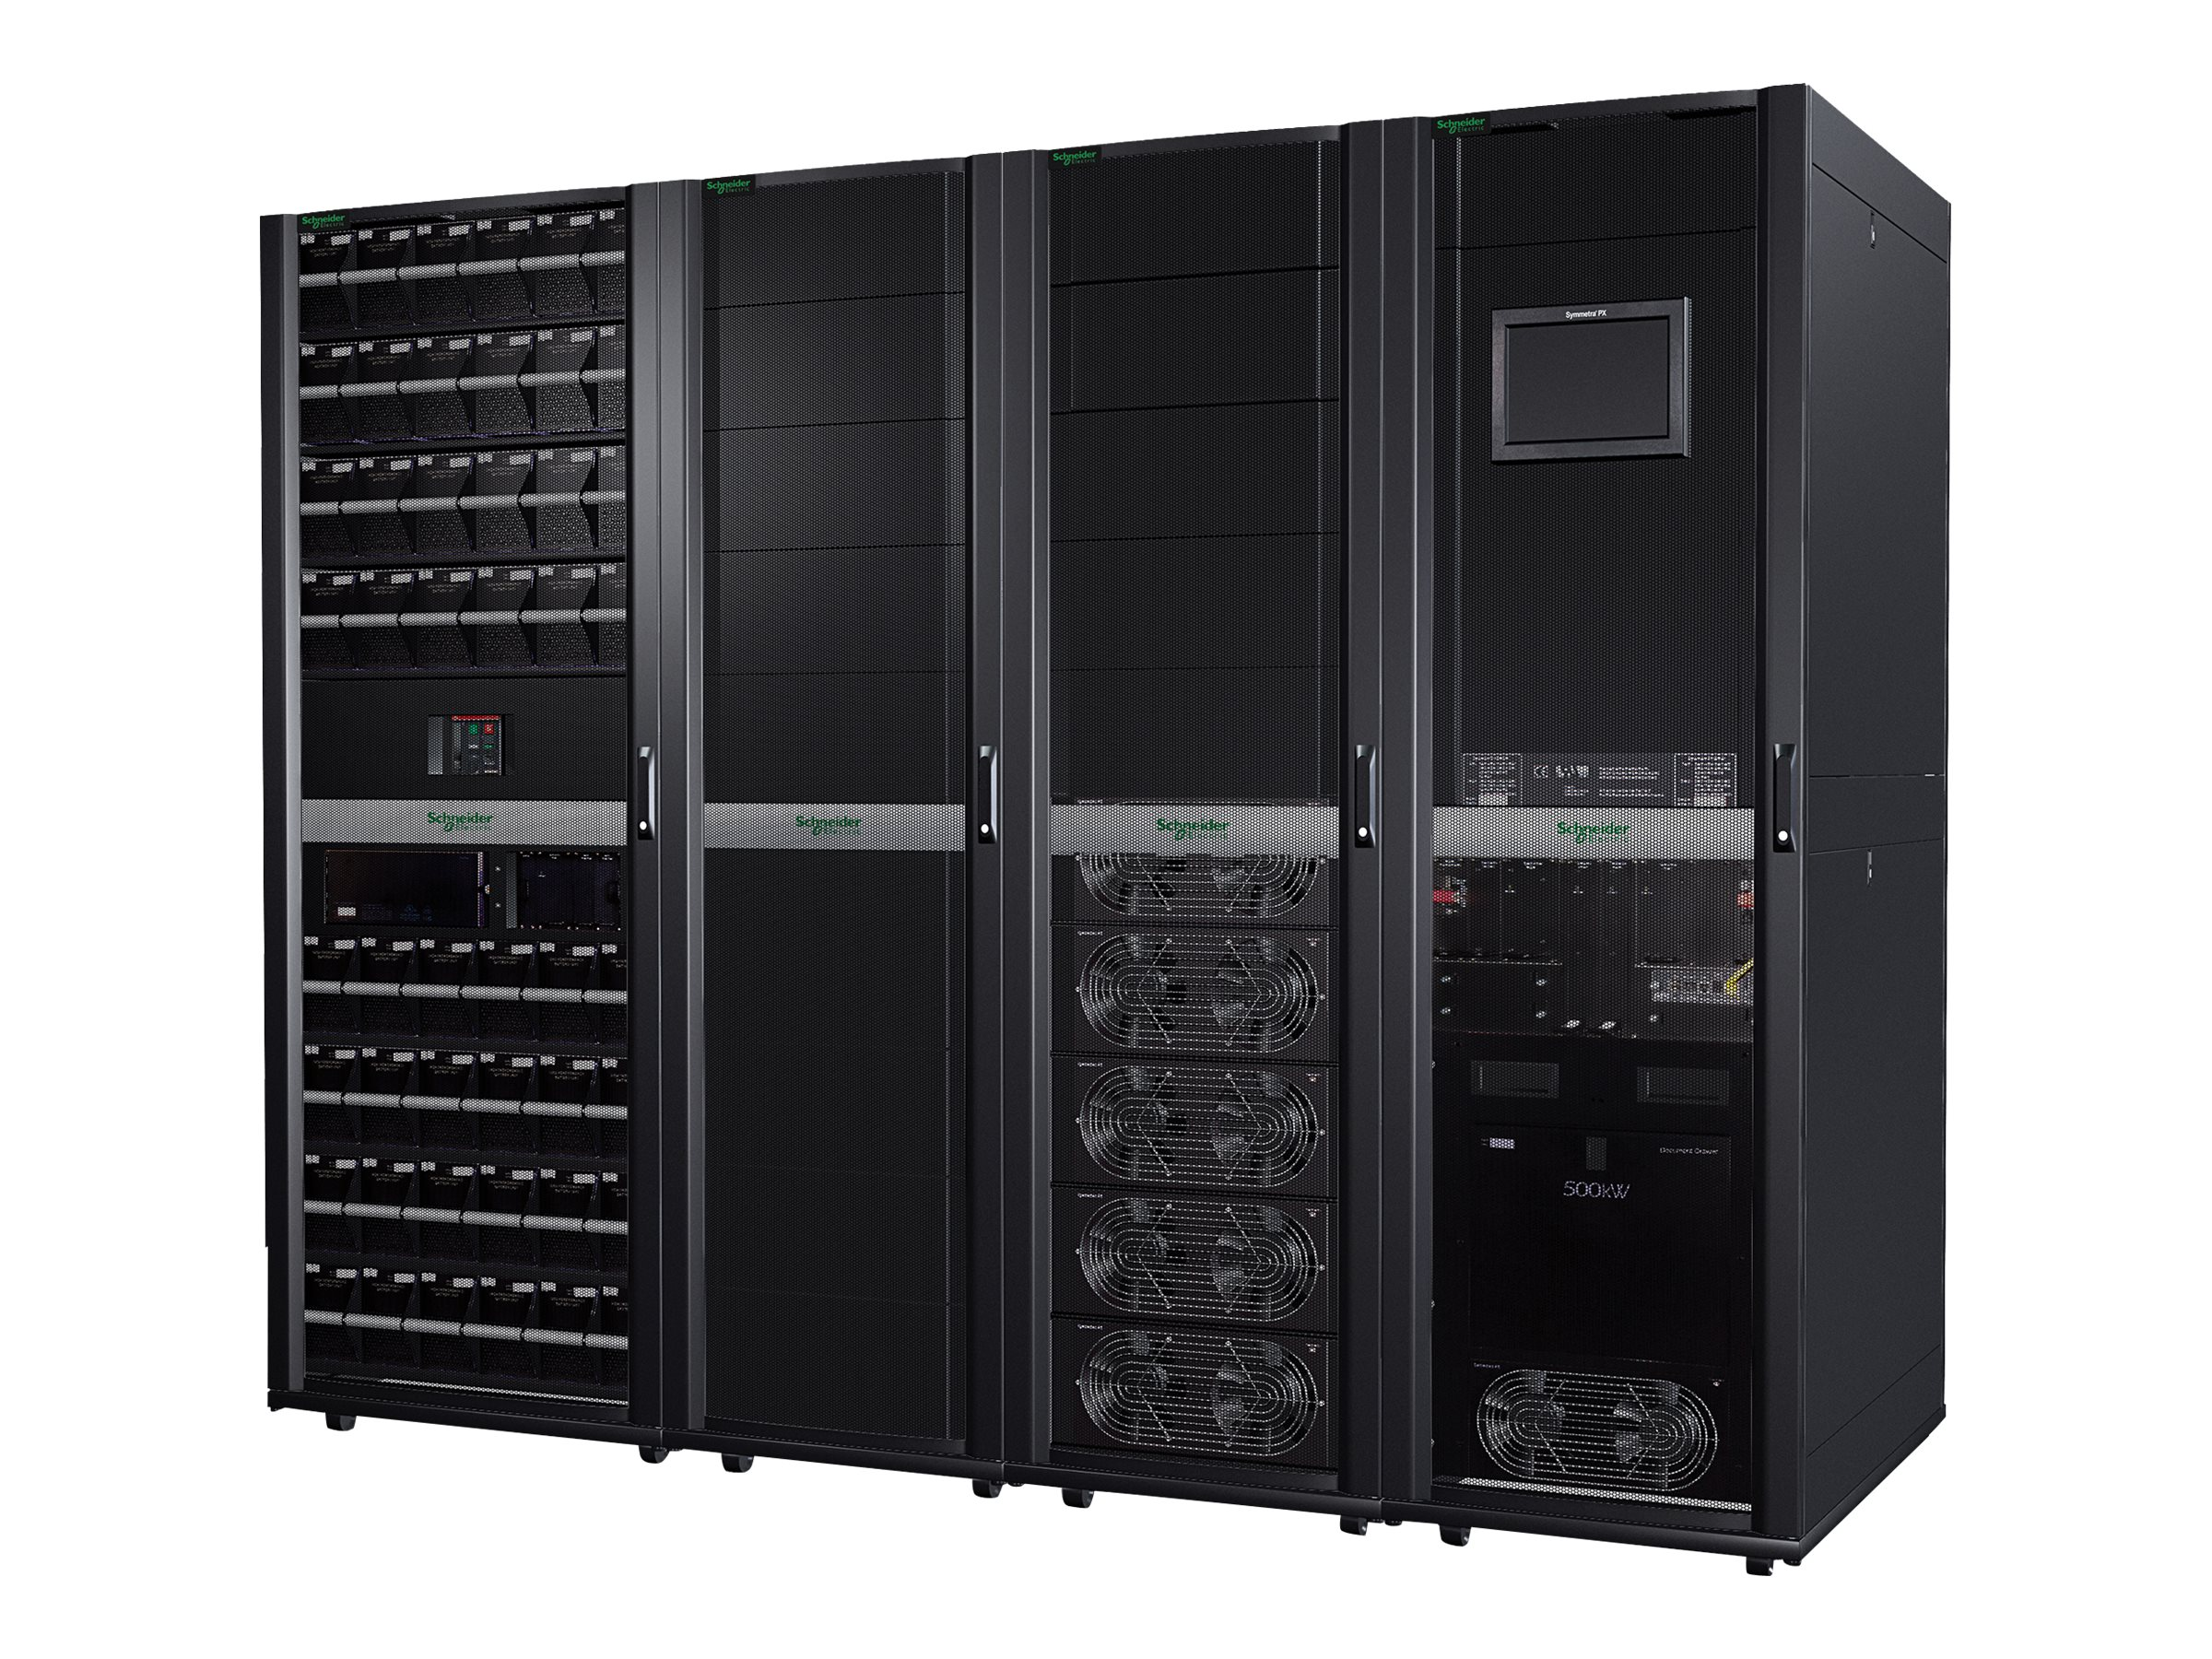 APC Symmetra PX 125kW Scalable to 500kW without Maintenance Bypass & Distribution-Parallel Capable - Strom - Anordnung - AC 400/